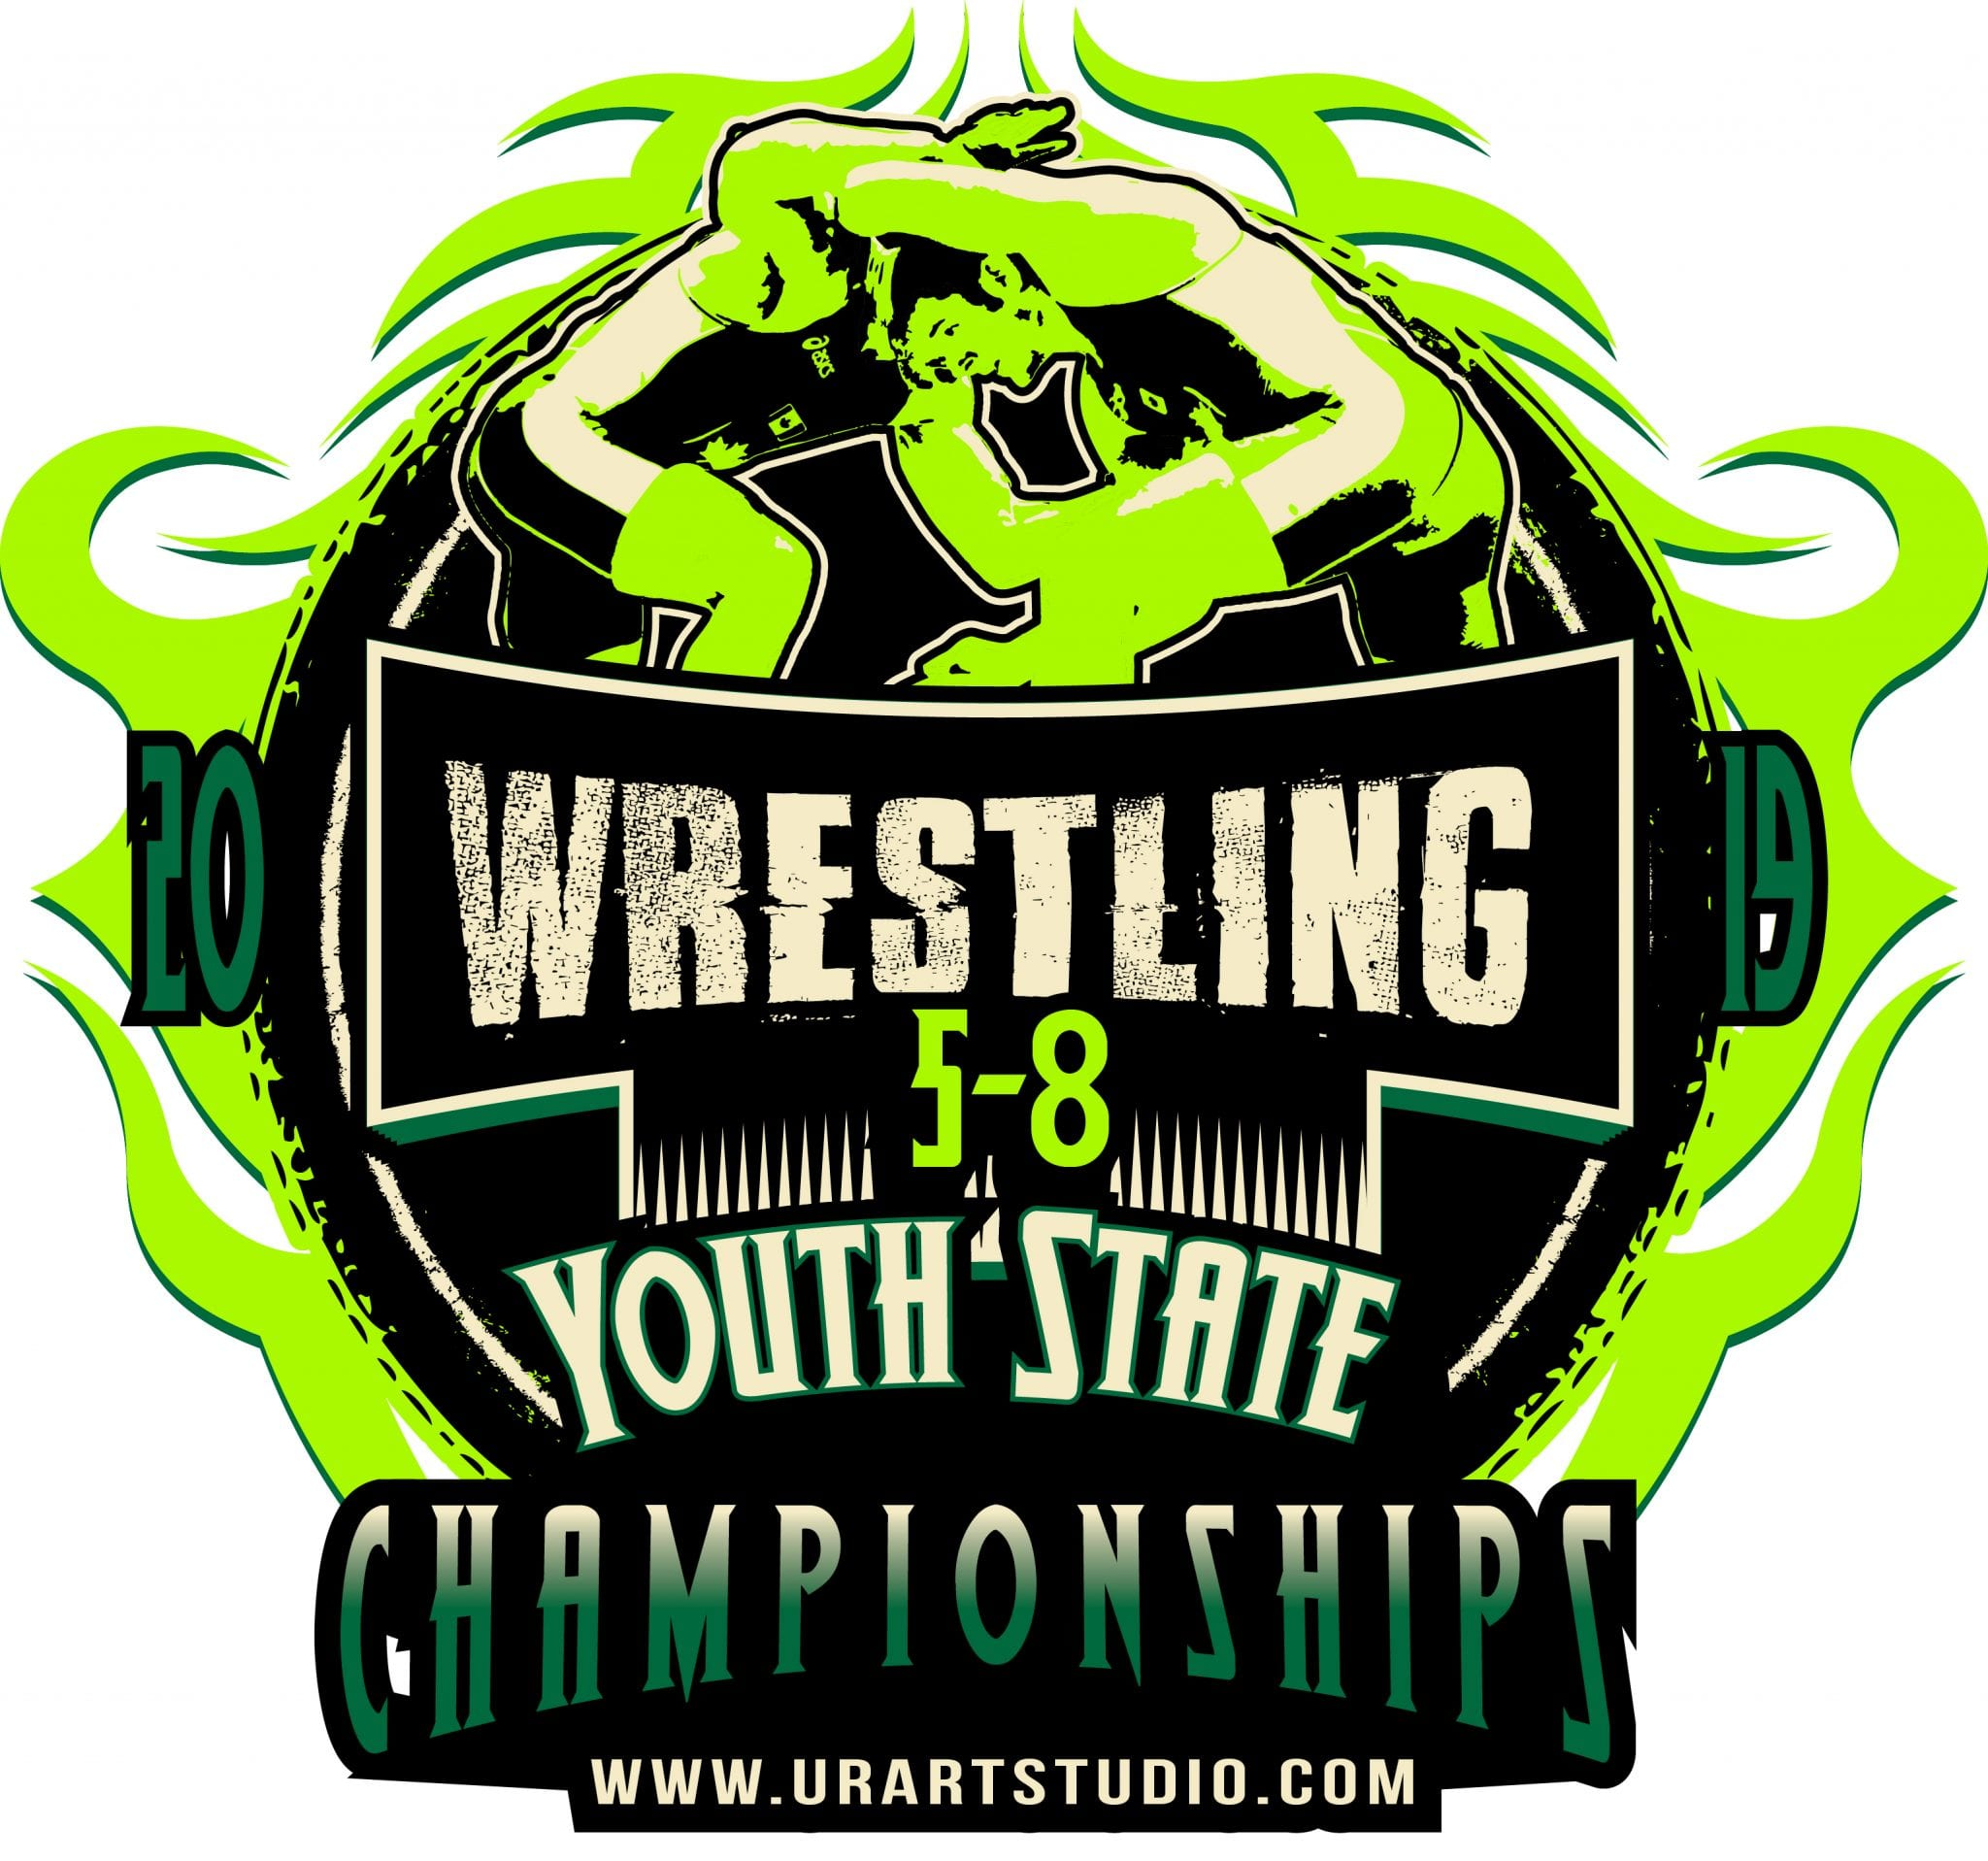 WRESTLING YOUTH STATE 5-8 CHAMPIONSHIPS 2019 T-shirt vector logo design for print